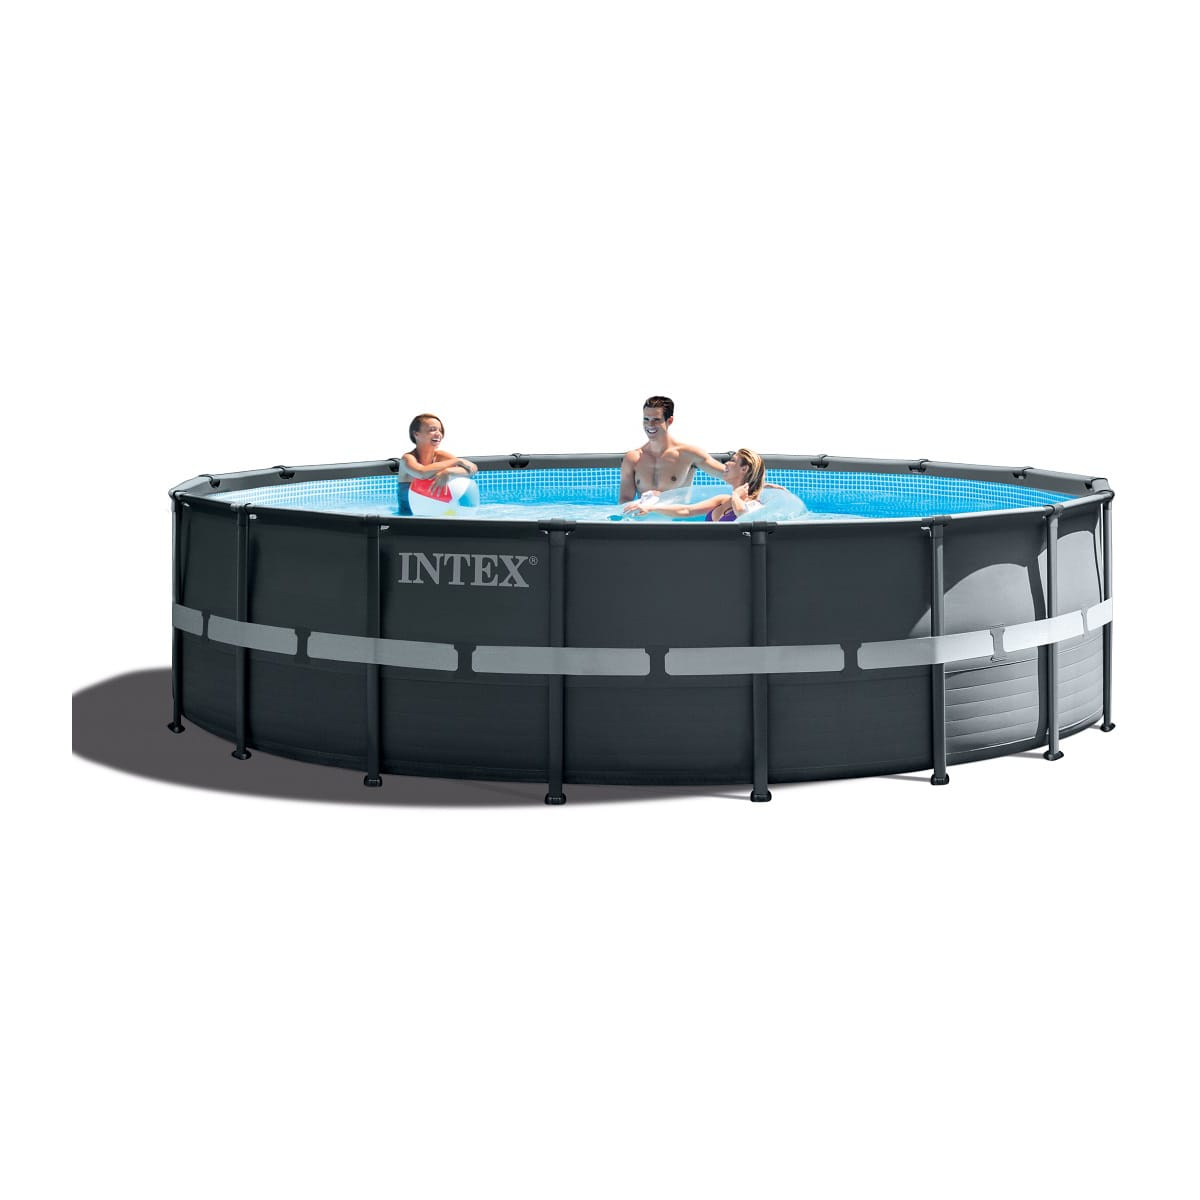 Intex Kit Piscine Ronde Tubulaire Ultra Frame 5,49M X 1,32M destiné Auchan Piscine Tubulaire